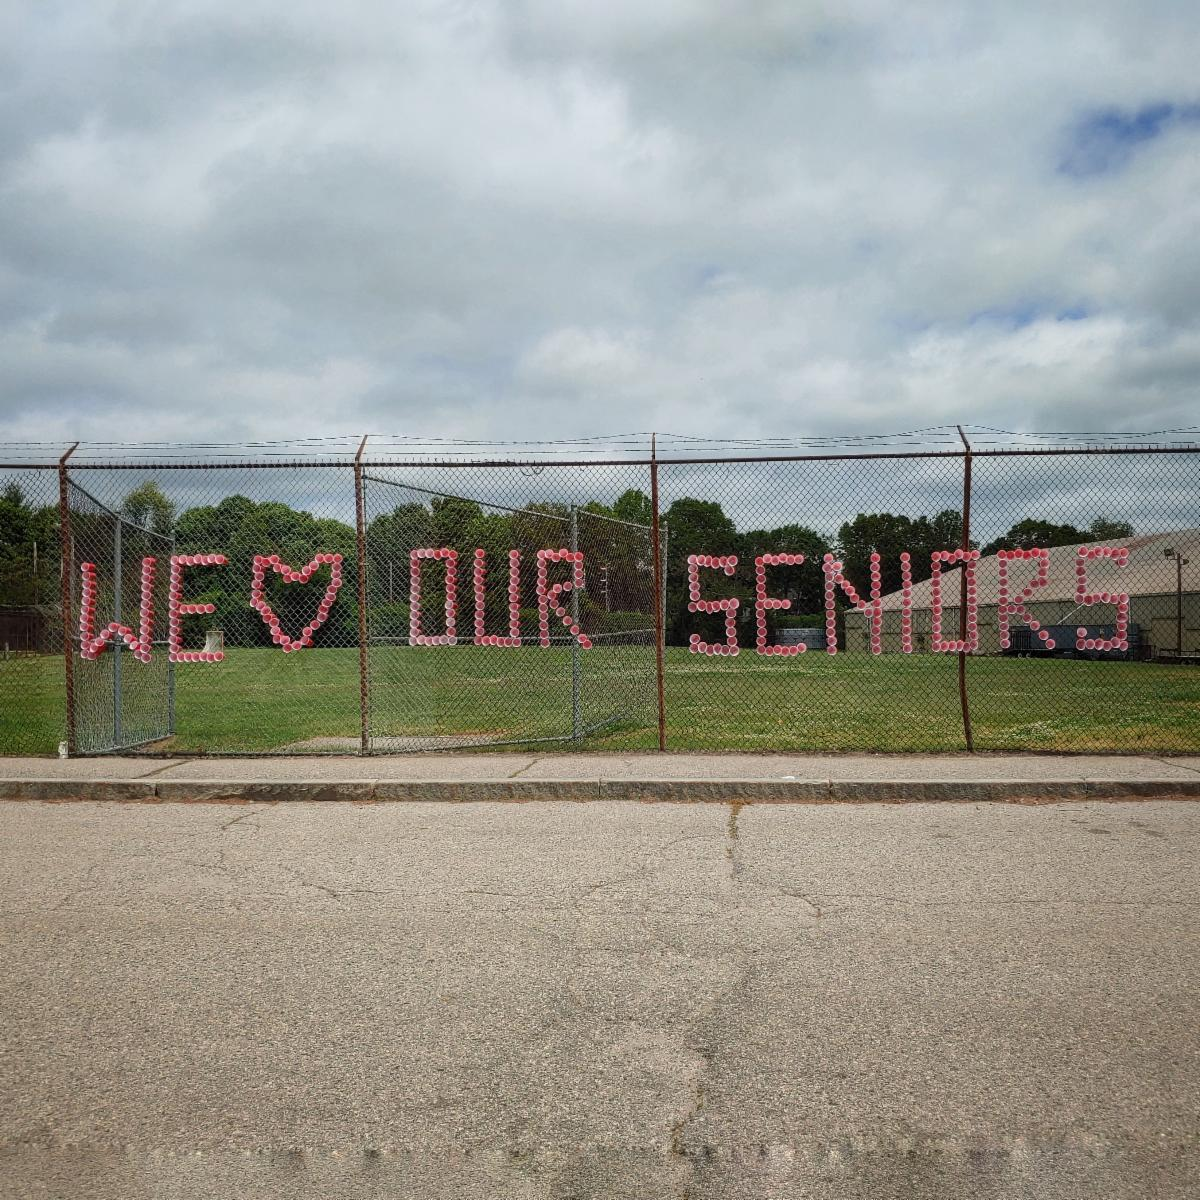 A photo of a chainlink fence with We Heart Our Seniors spelled out in red plastic cups pushed through holes in the fence.